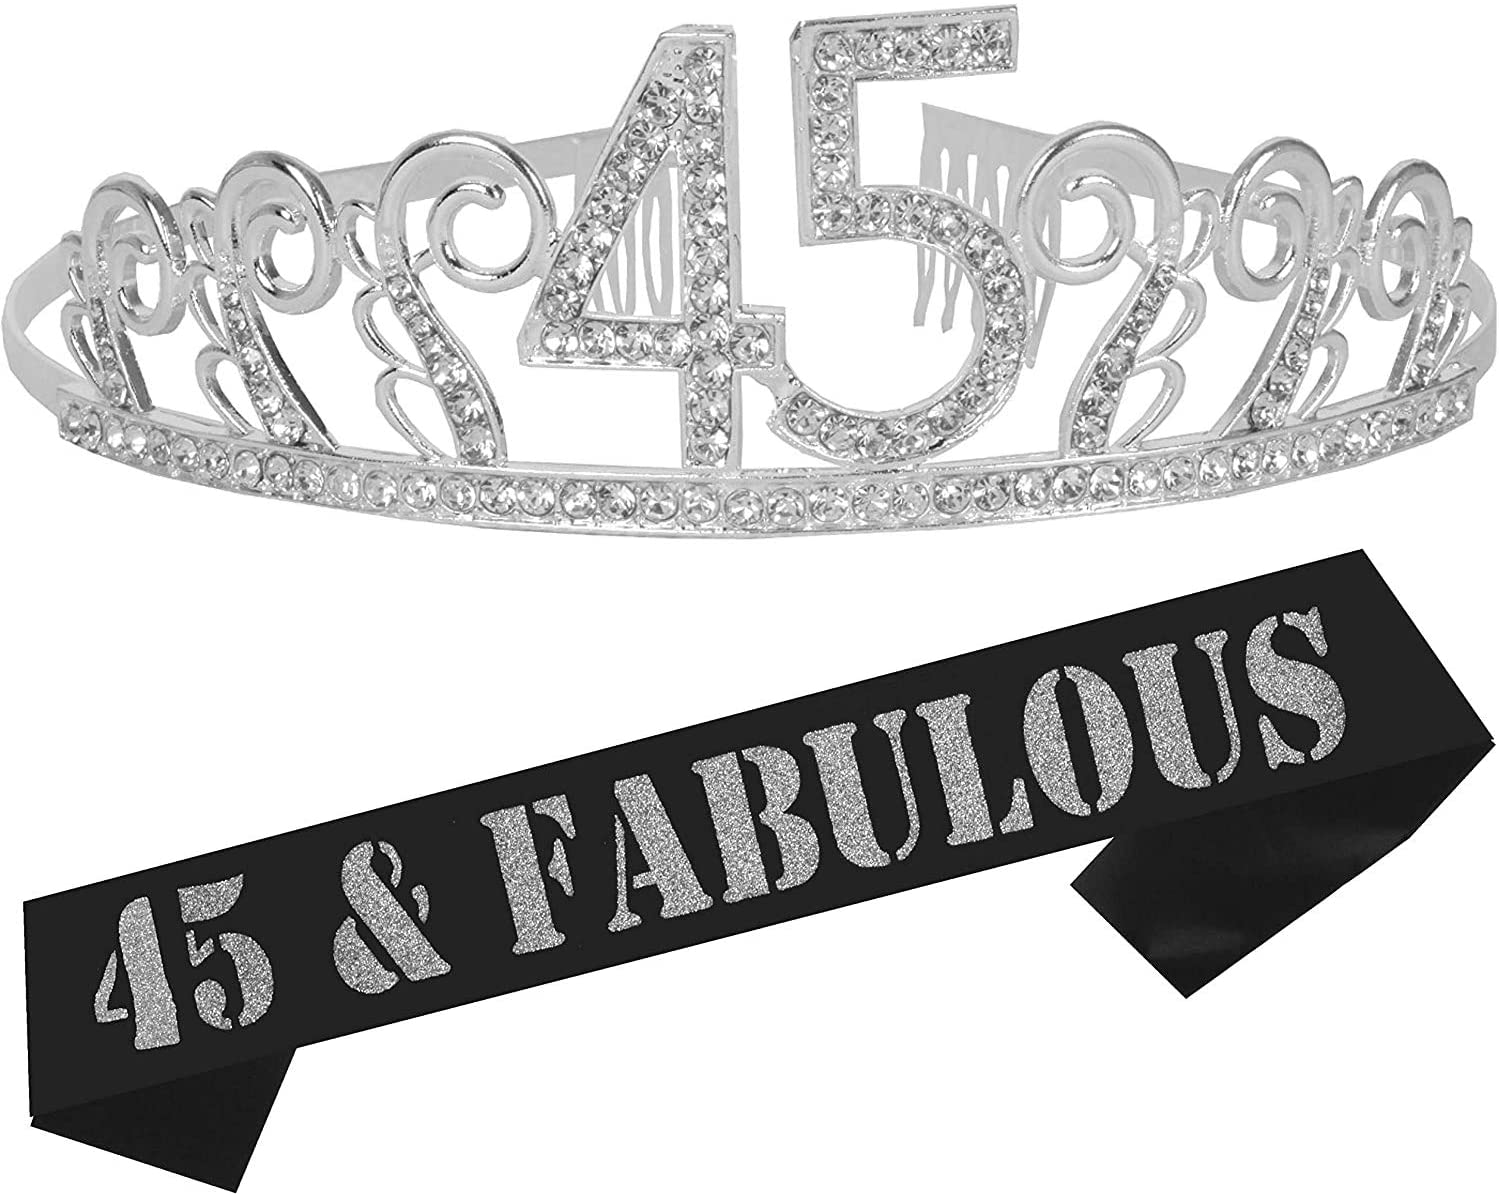 45th Birthday Gifts for Women, 45th Birthday Tiara and Sash, Happy 45th Birthday Party Supplies, 45 & Fabulous Sash and Tiara Birthday Crown for 45th Birthday Party Supplies and Decorations (Silver)…